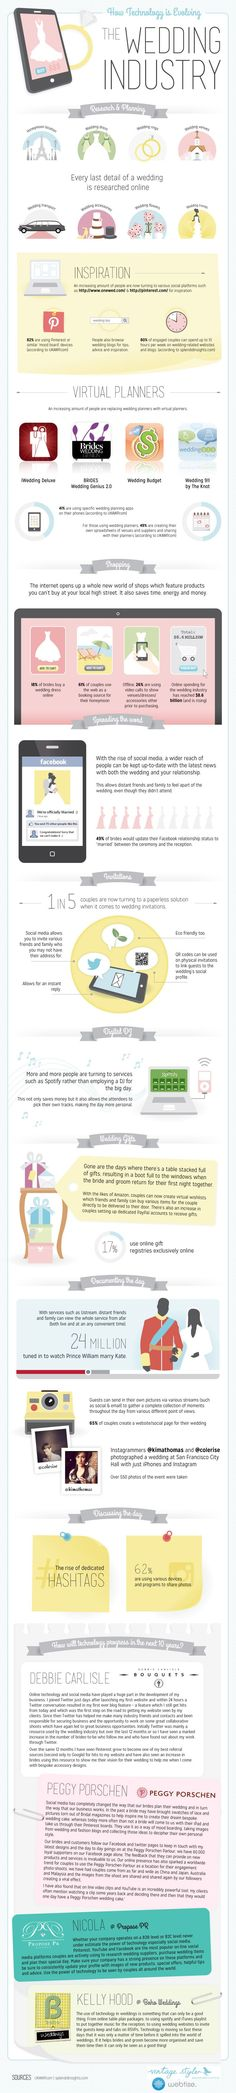 How Technology is Evolving the Wedding Industry [INFOGRAPHIC]